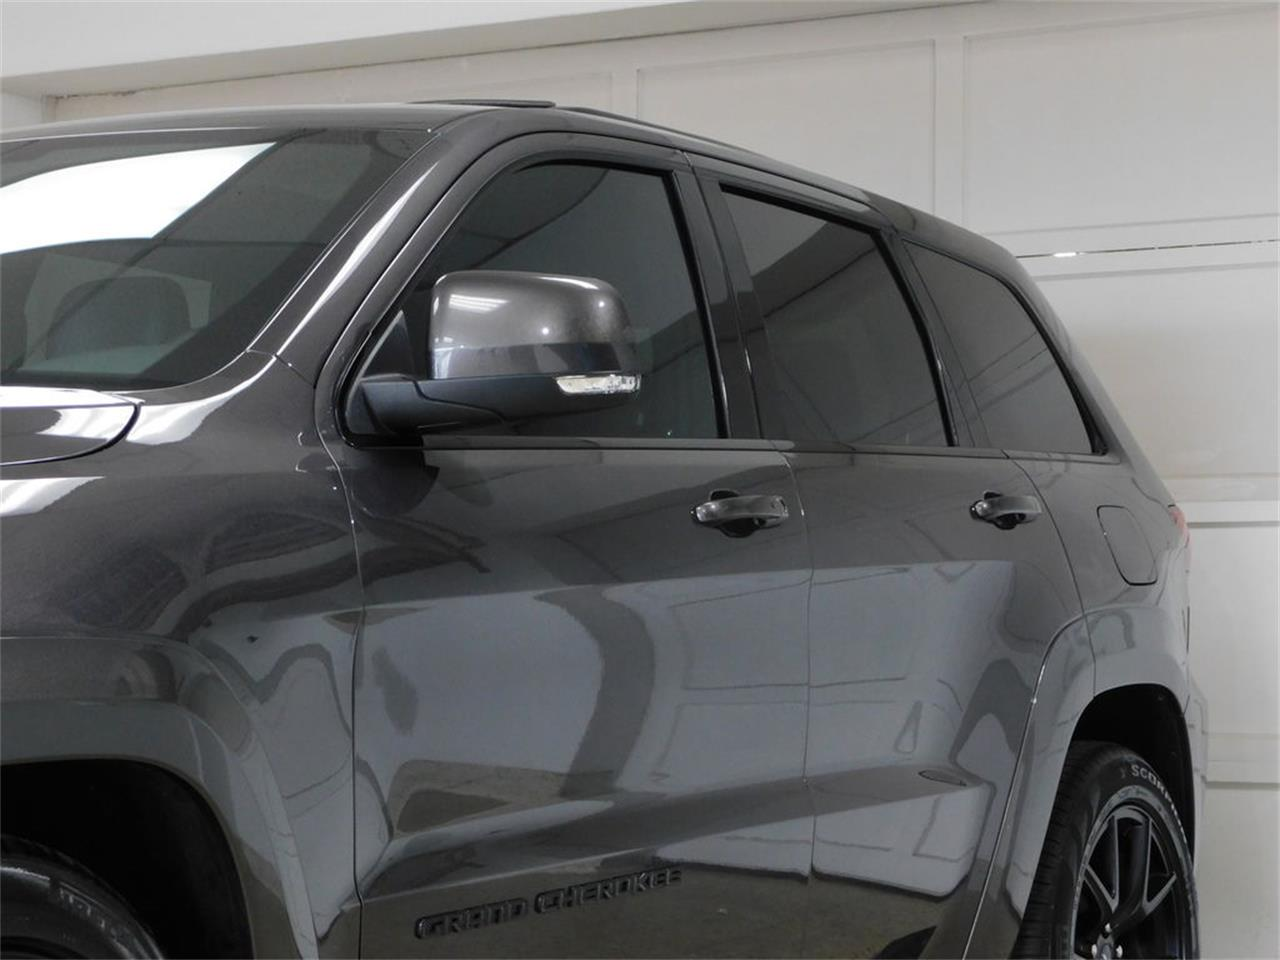 2019 Jeep Grand Cherokee (CC-1336760) for sale in Hamburg, New York